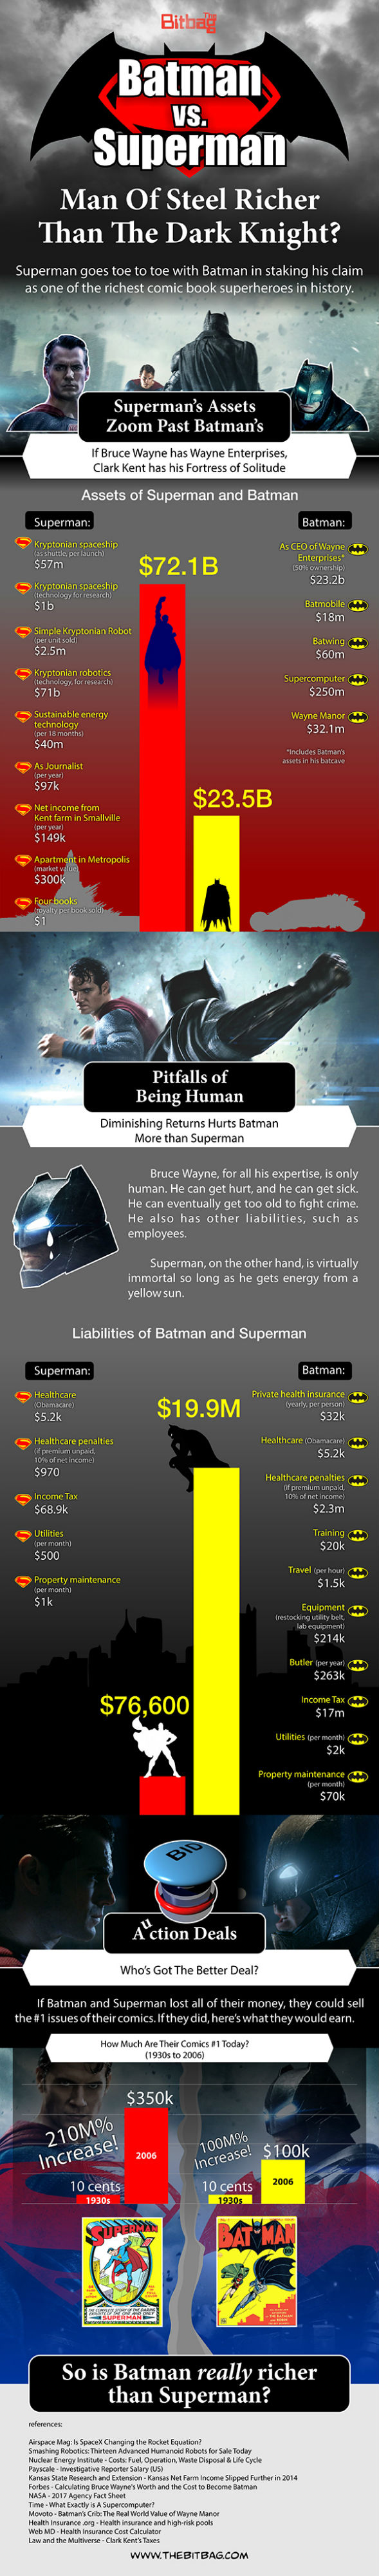 Bitbag infographic comparing Batman and Superman's wealth